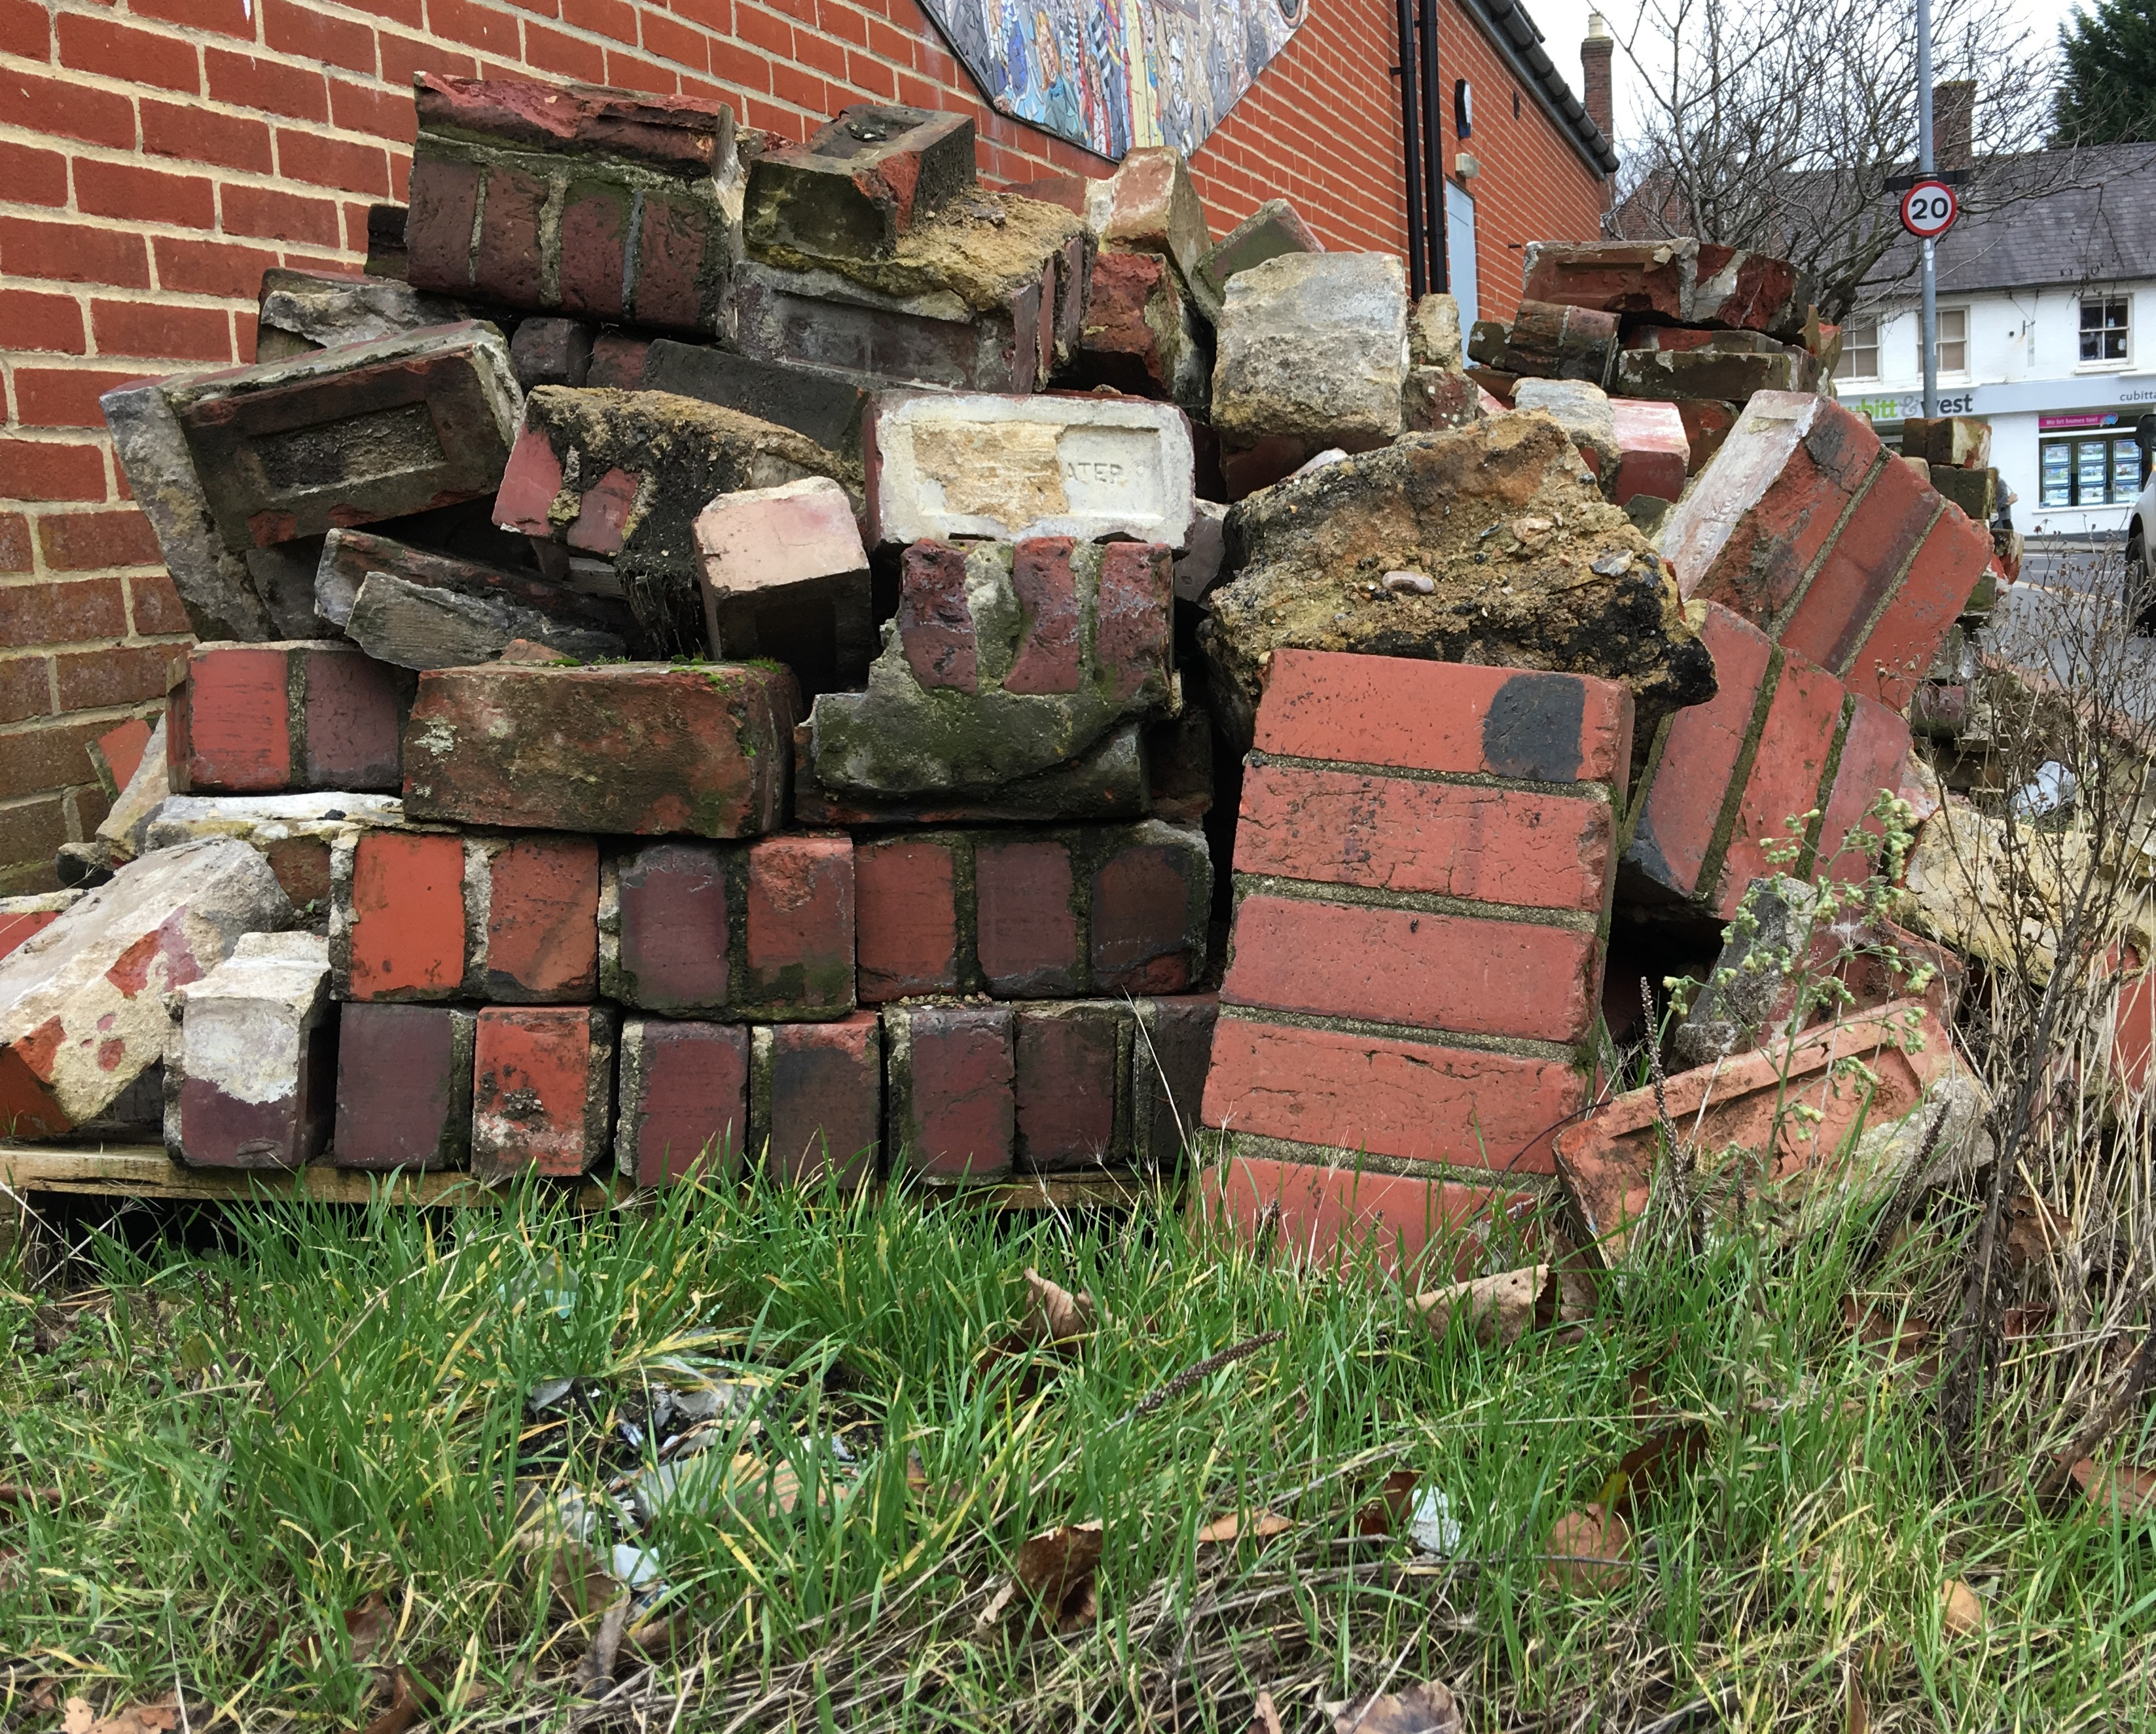 Historic red bricks stored on the side of Library Way, Uckfield, after their removal from the High Street during improvement works